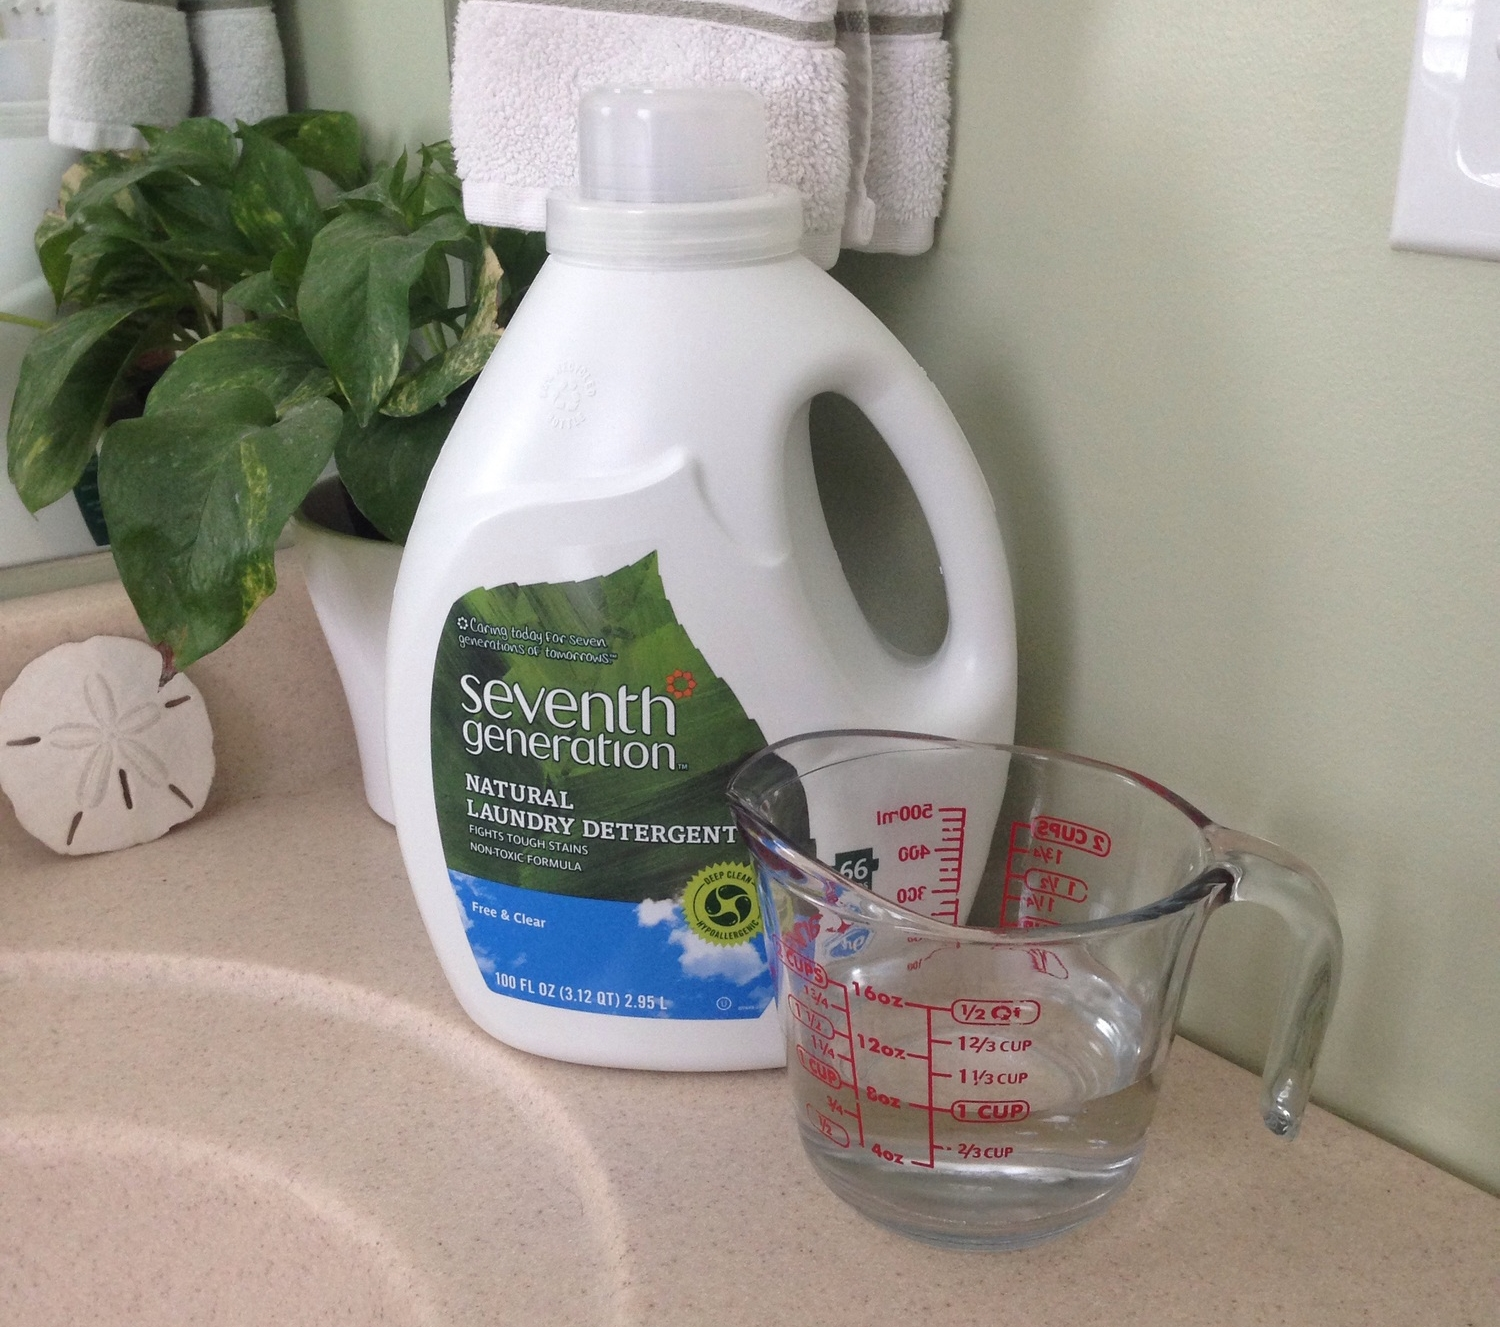 To clean your shower curtain liner all you need is white vinegar, laundry detergent, and a washing machine